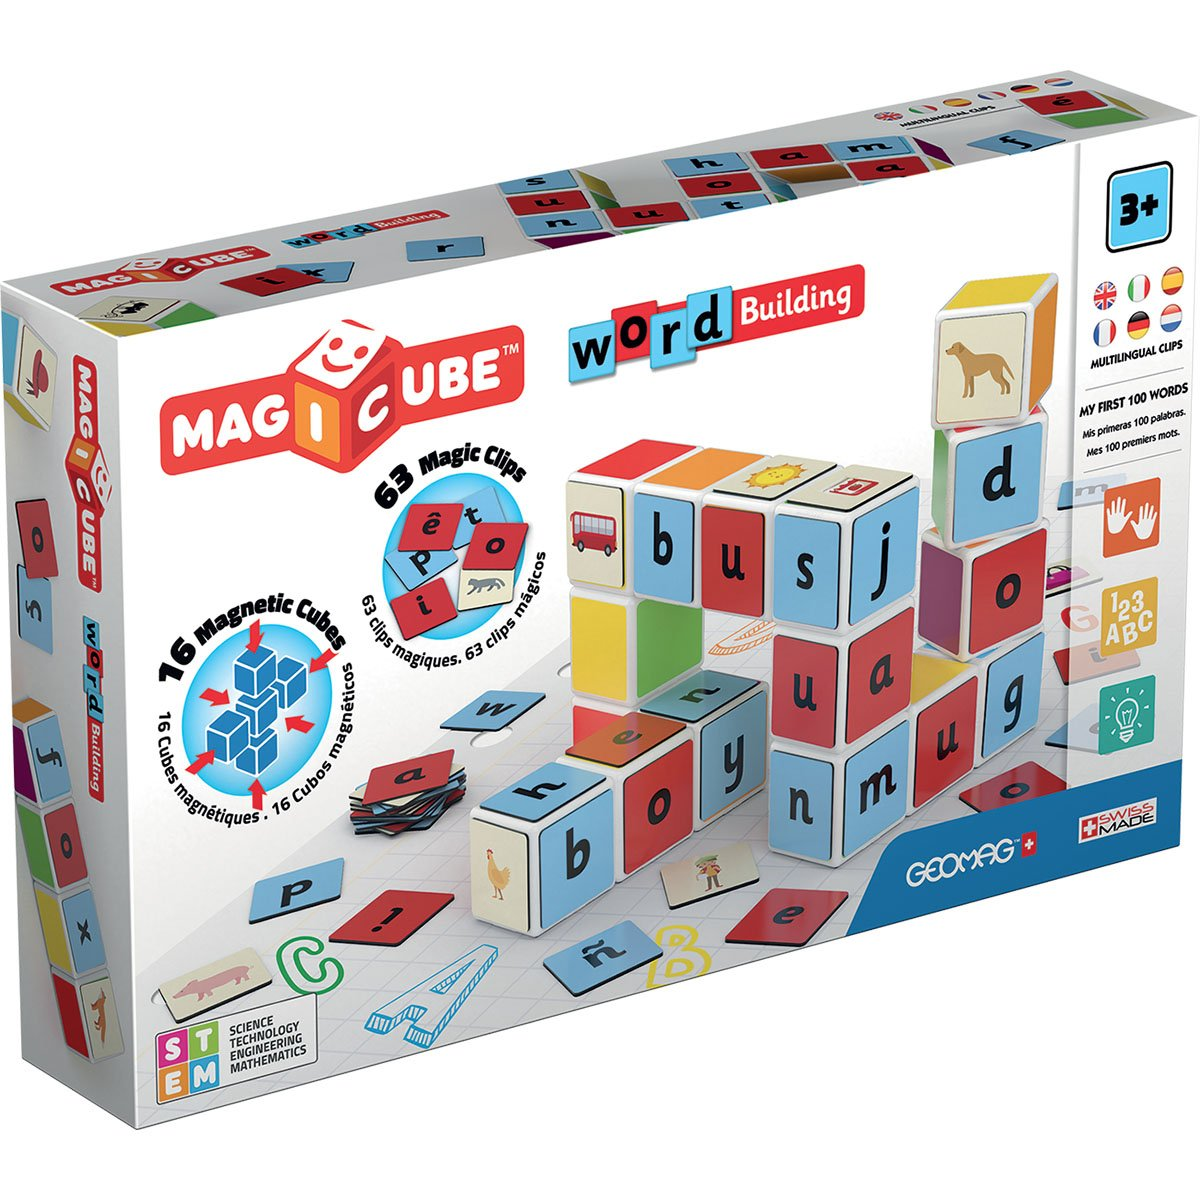 Joc de constructie magnetic Magic Cube, Word Building